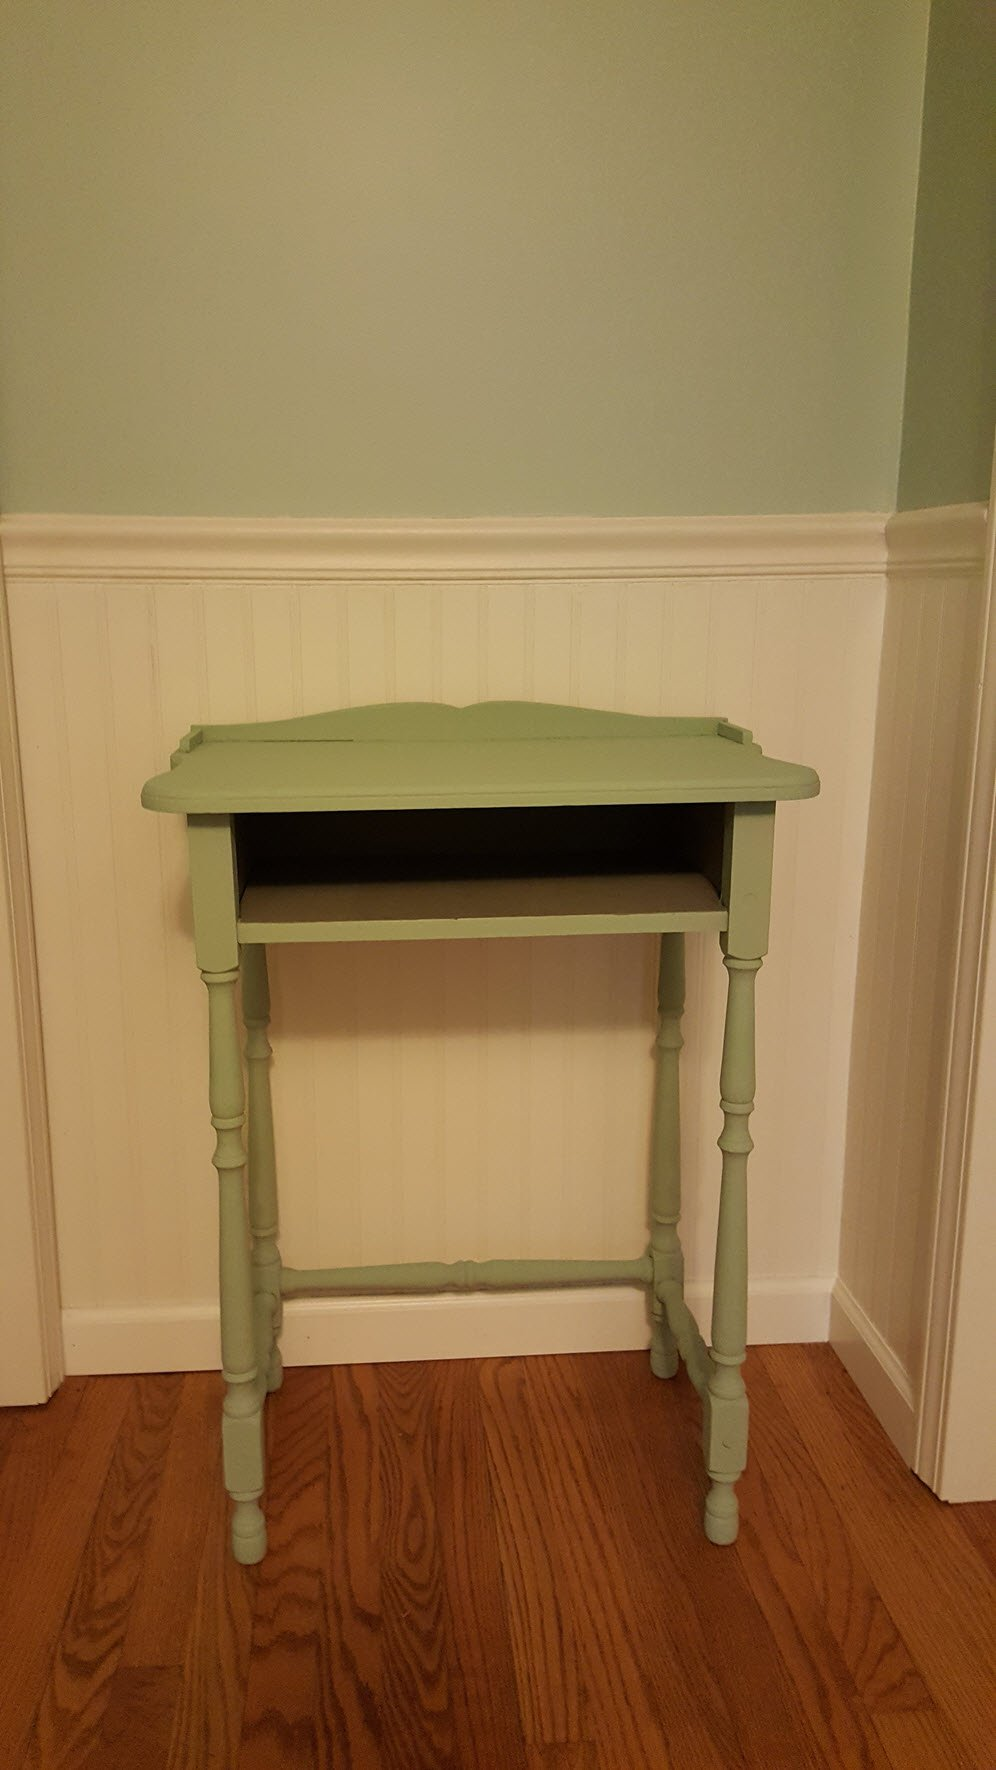 Antique table painted poetic blue by Pure and Original- Antique Table Gets A Paint Makeover in Beautiful Poetic Blue